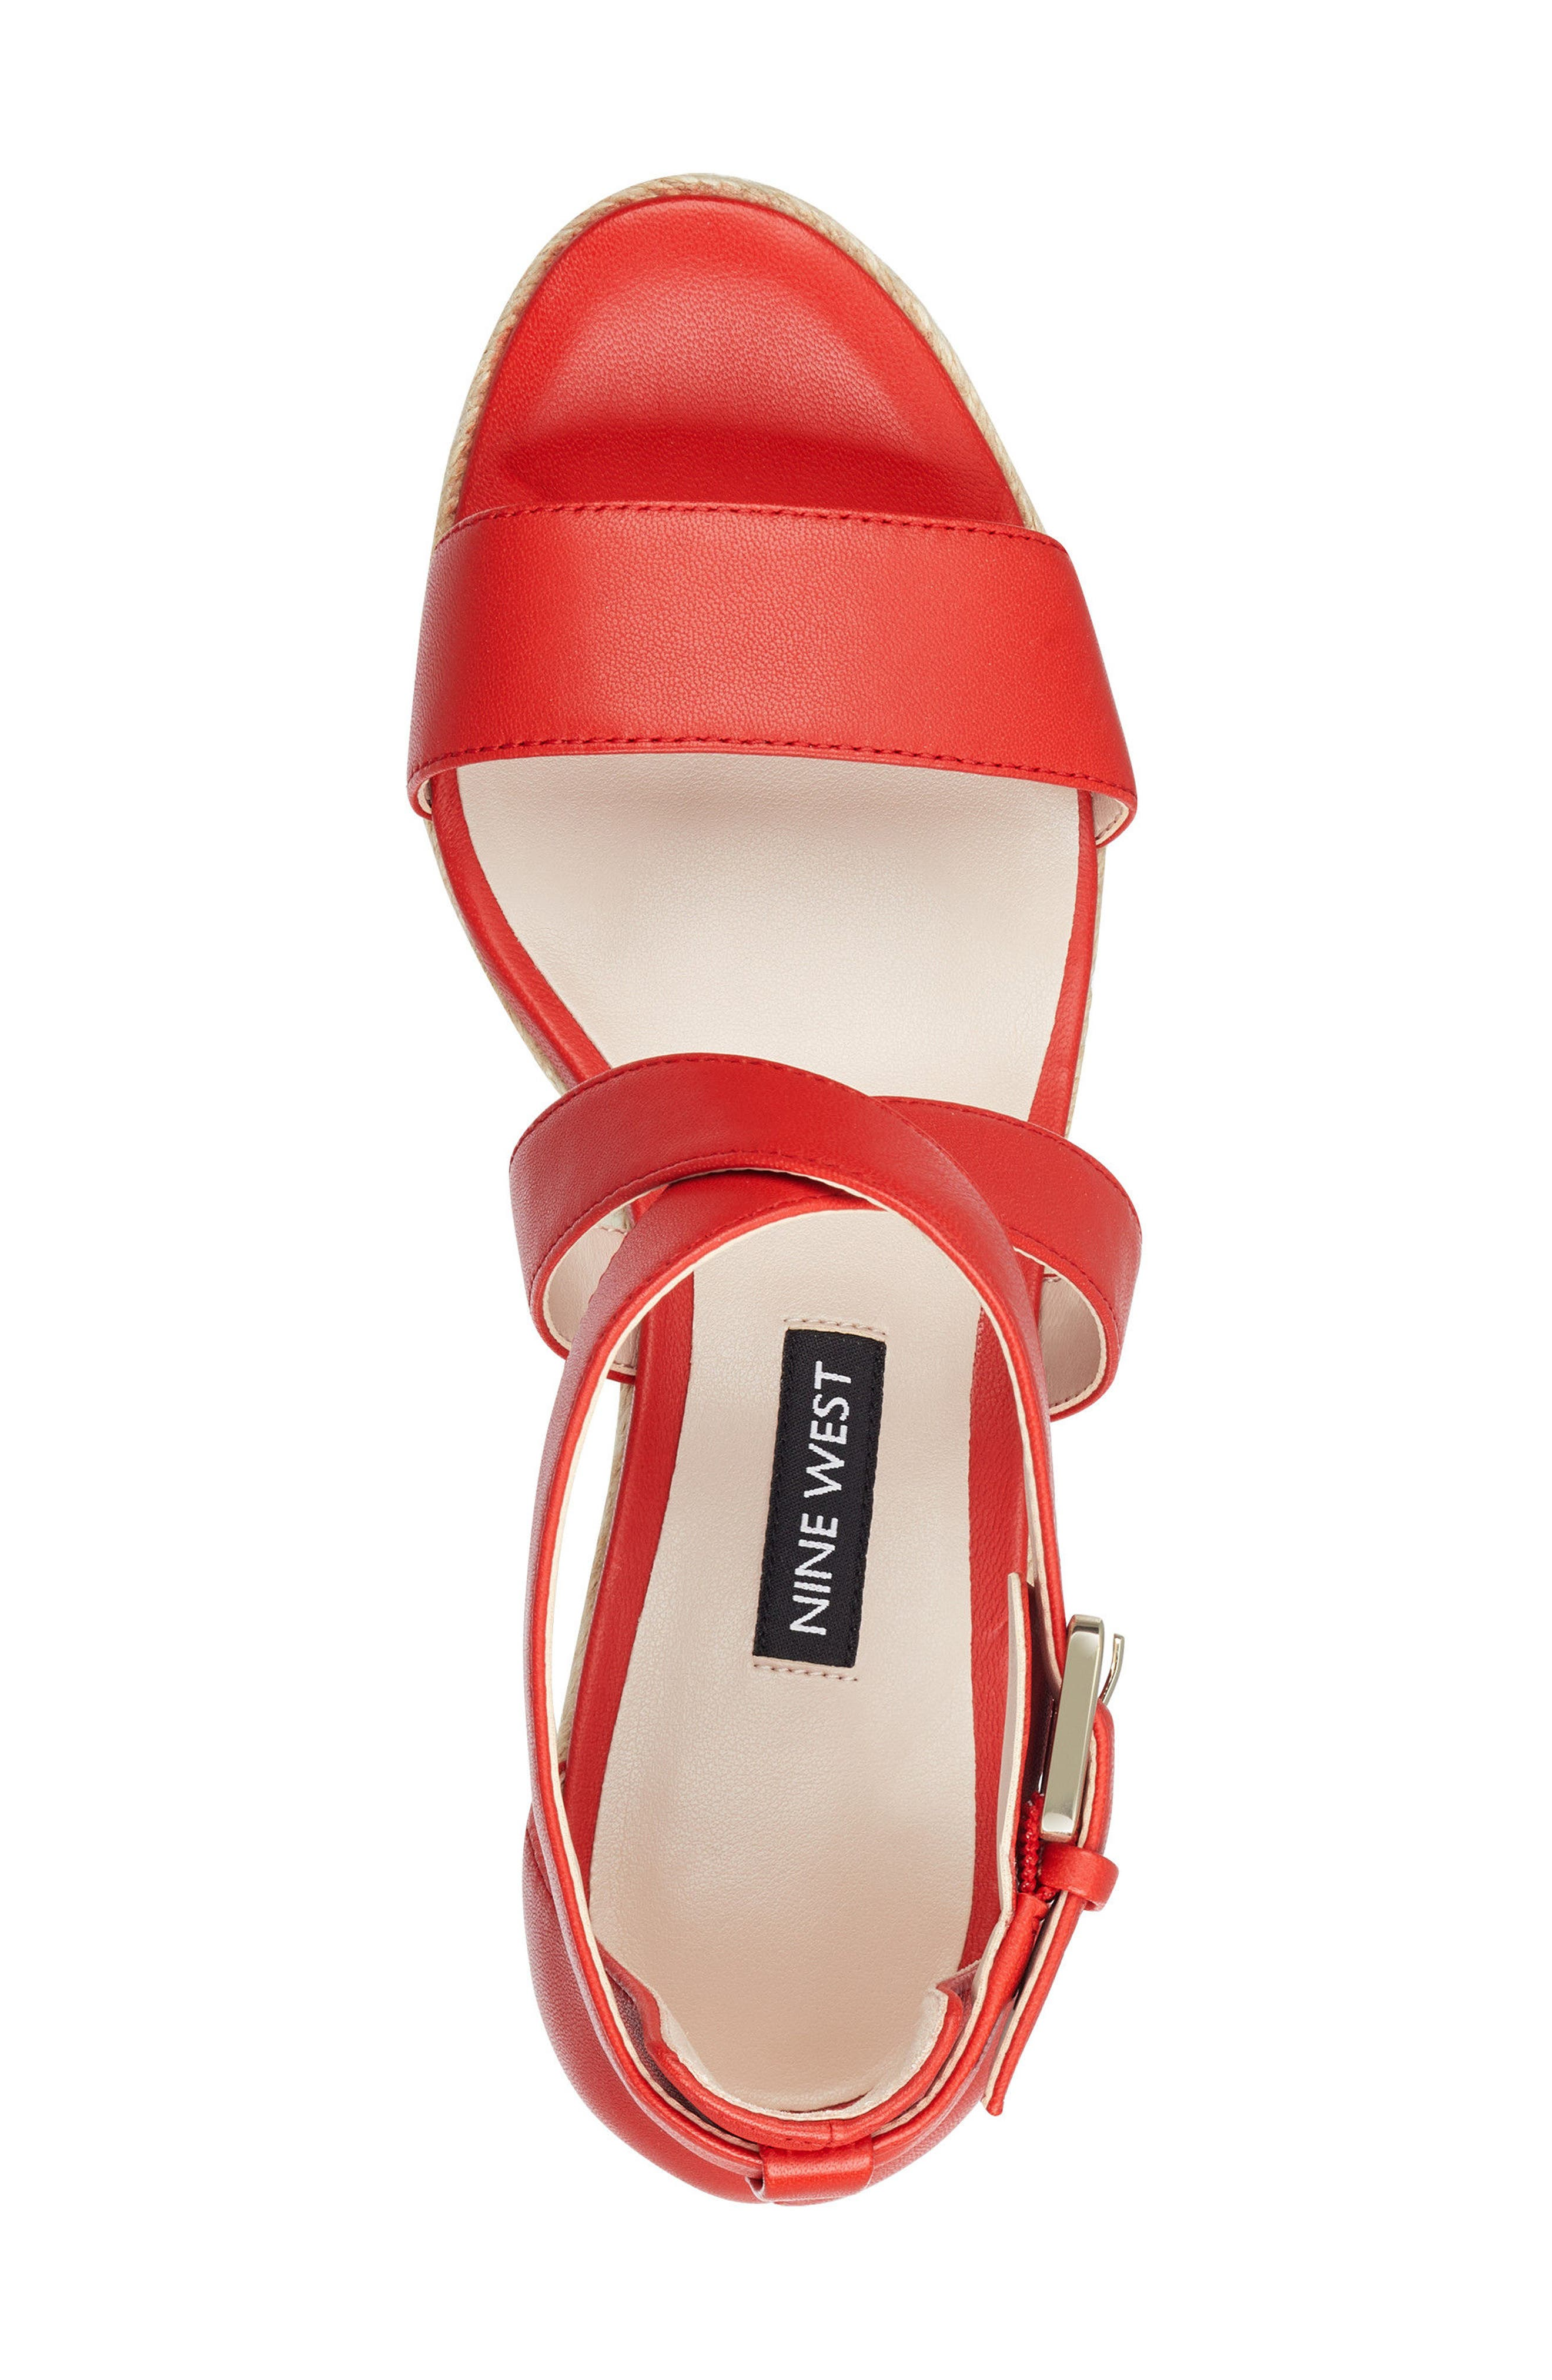 Jorjapeach Espadrille Wedge Sandal,                             Alternate thumbnail 5, color,                             RED LEATHER